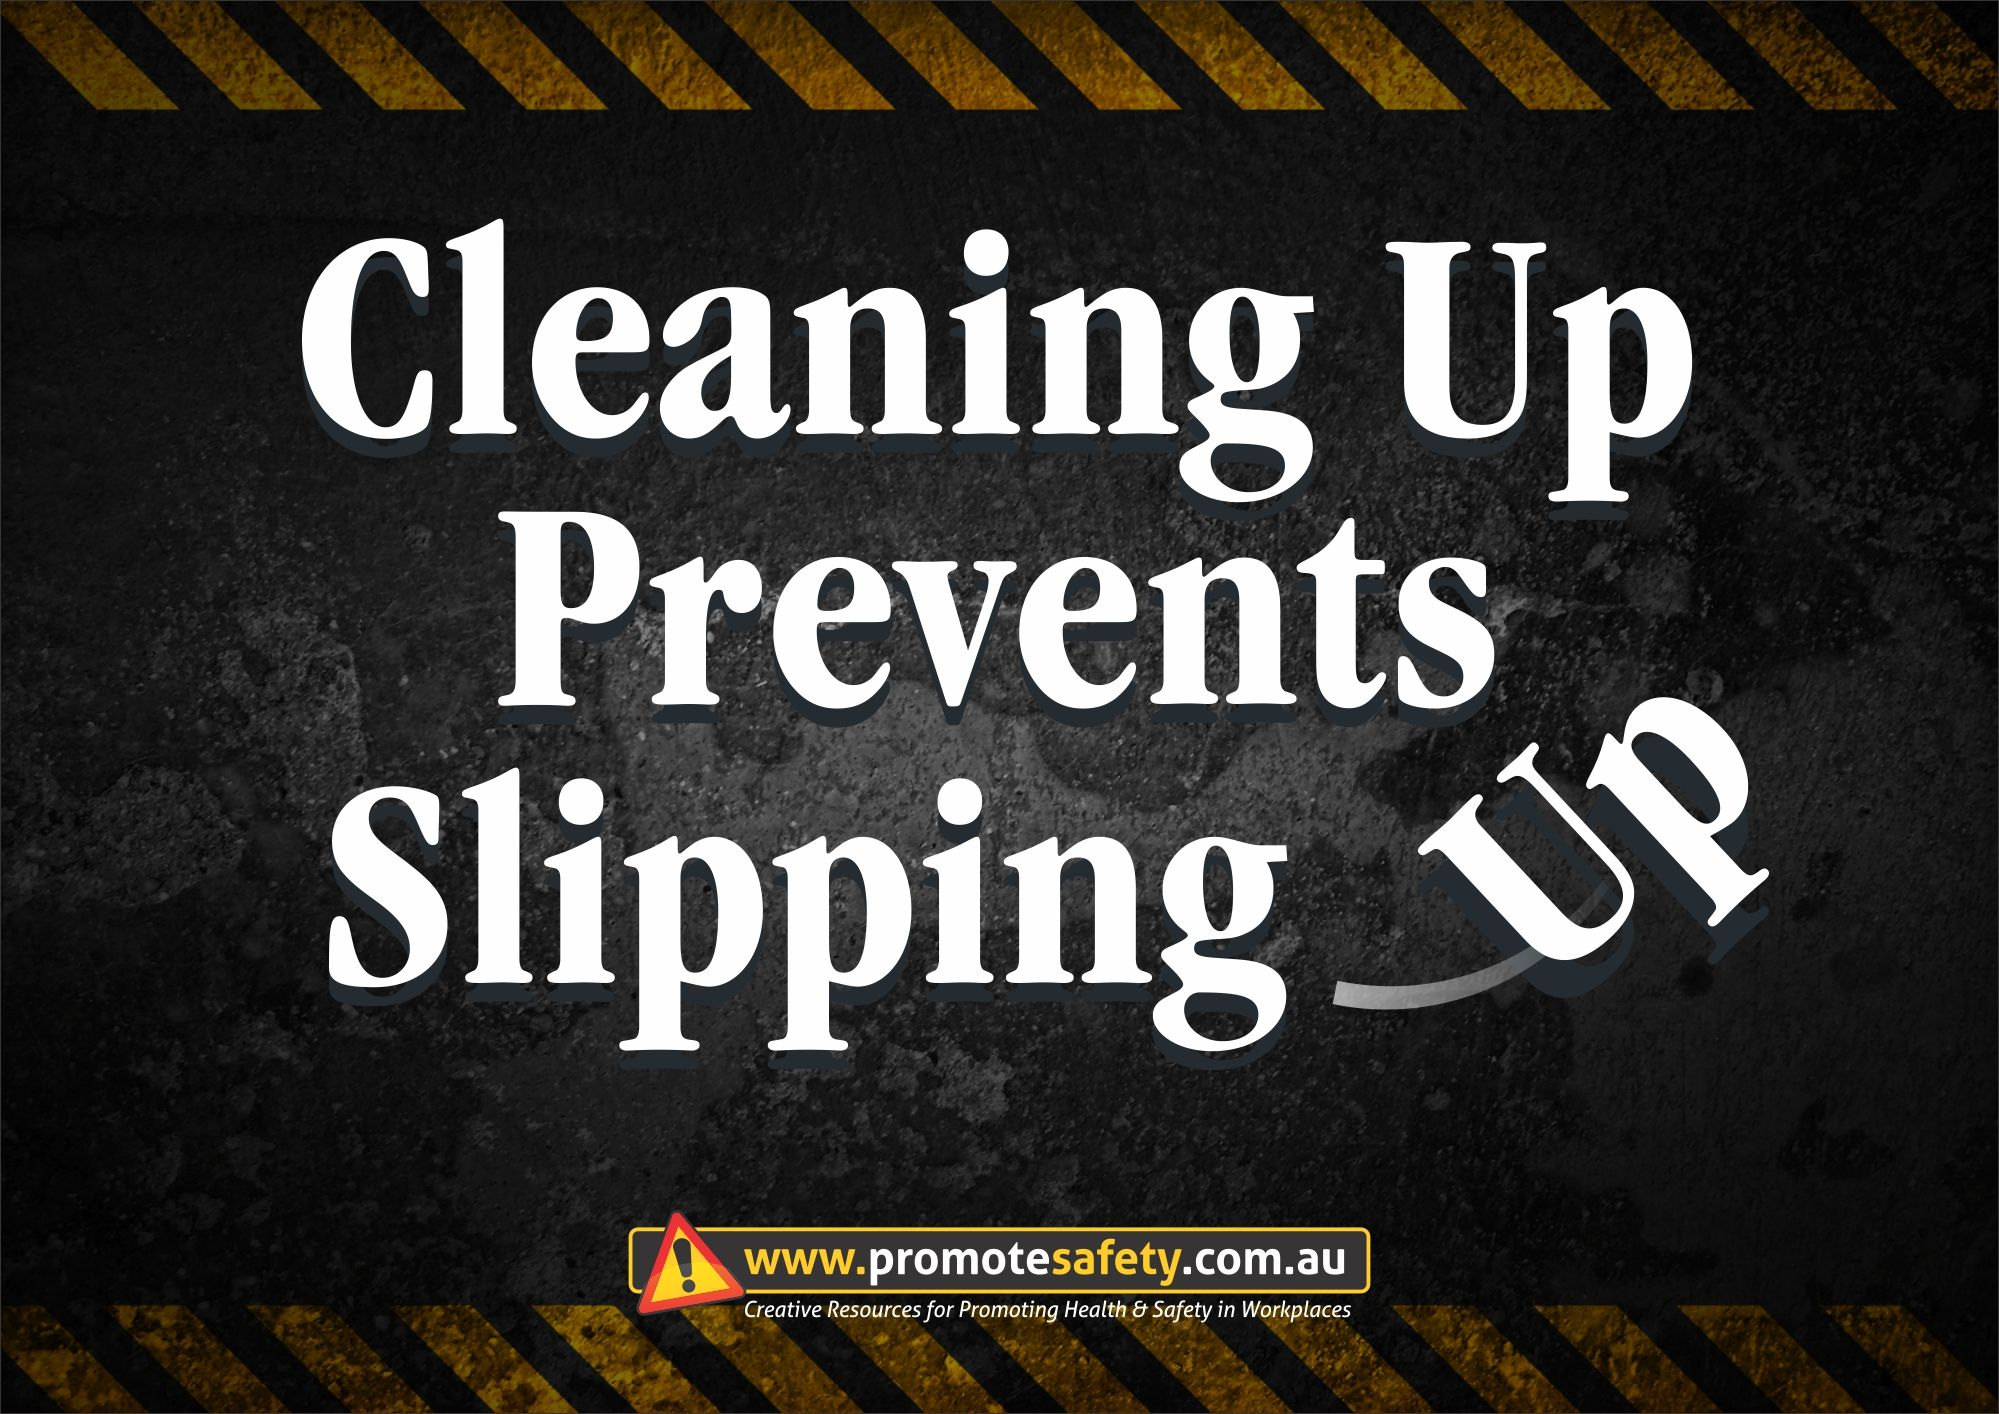 Workplace Safety Slogan Cleaning Up Prevents Slipping Up Safety Slogans Workplace Safety Slogans Safety Posters